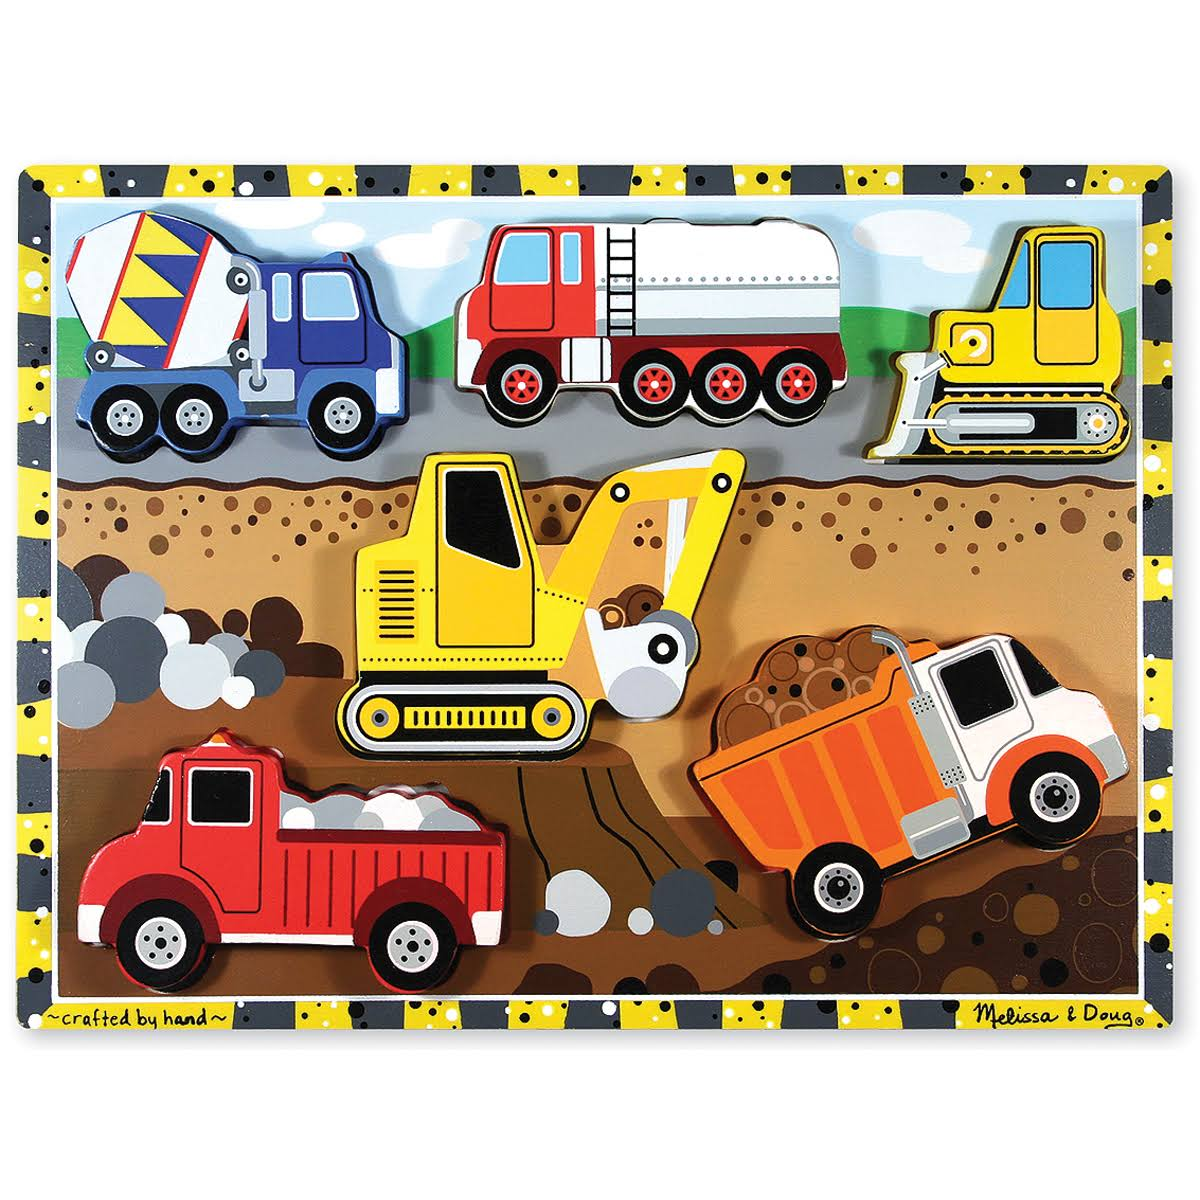 Melissa & Doug Construction Vehicles Wooden Chunky Puzzle - 6 Pieces